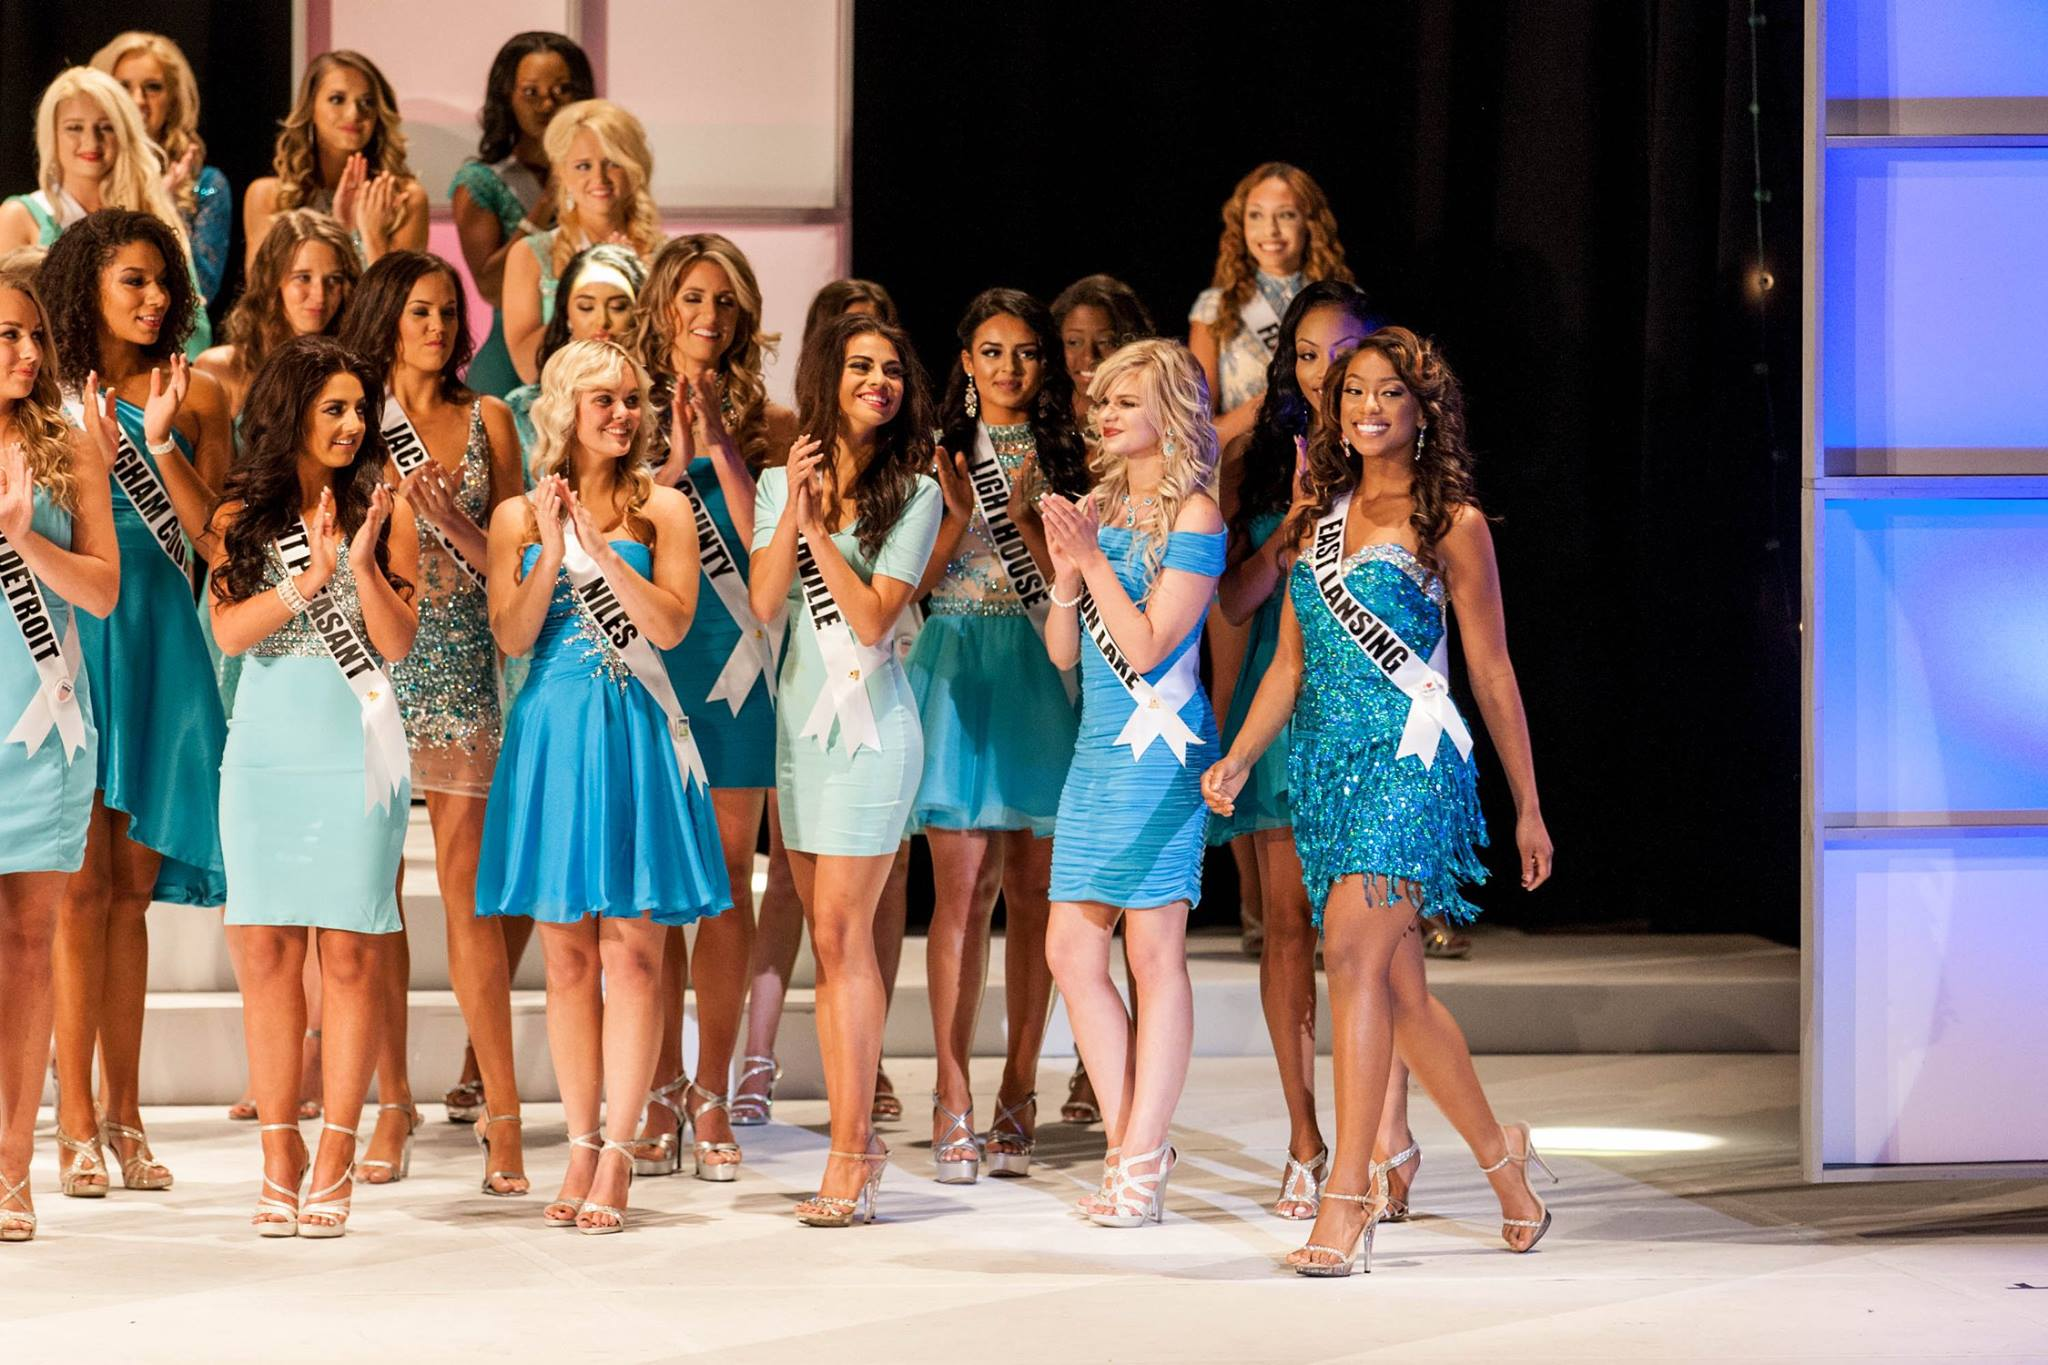 Ashley Jones being announced to the Top 15 at Miss Michigan USA 2016